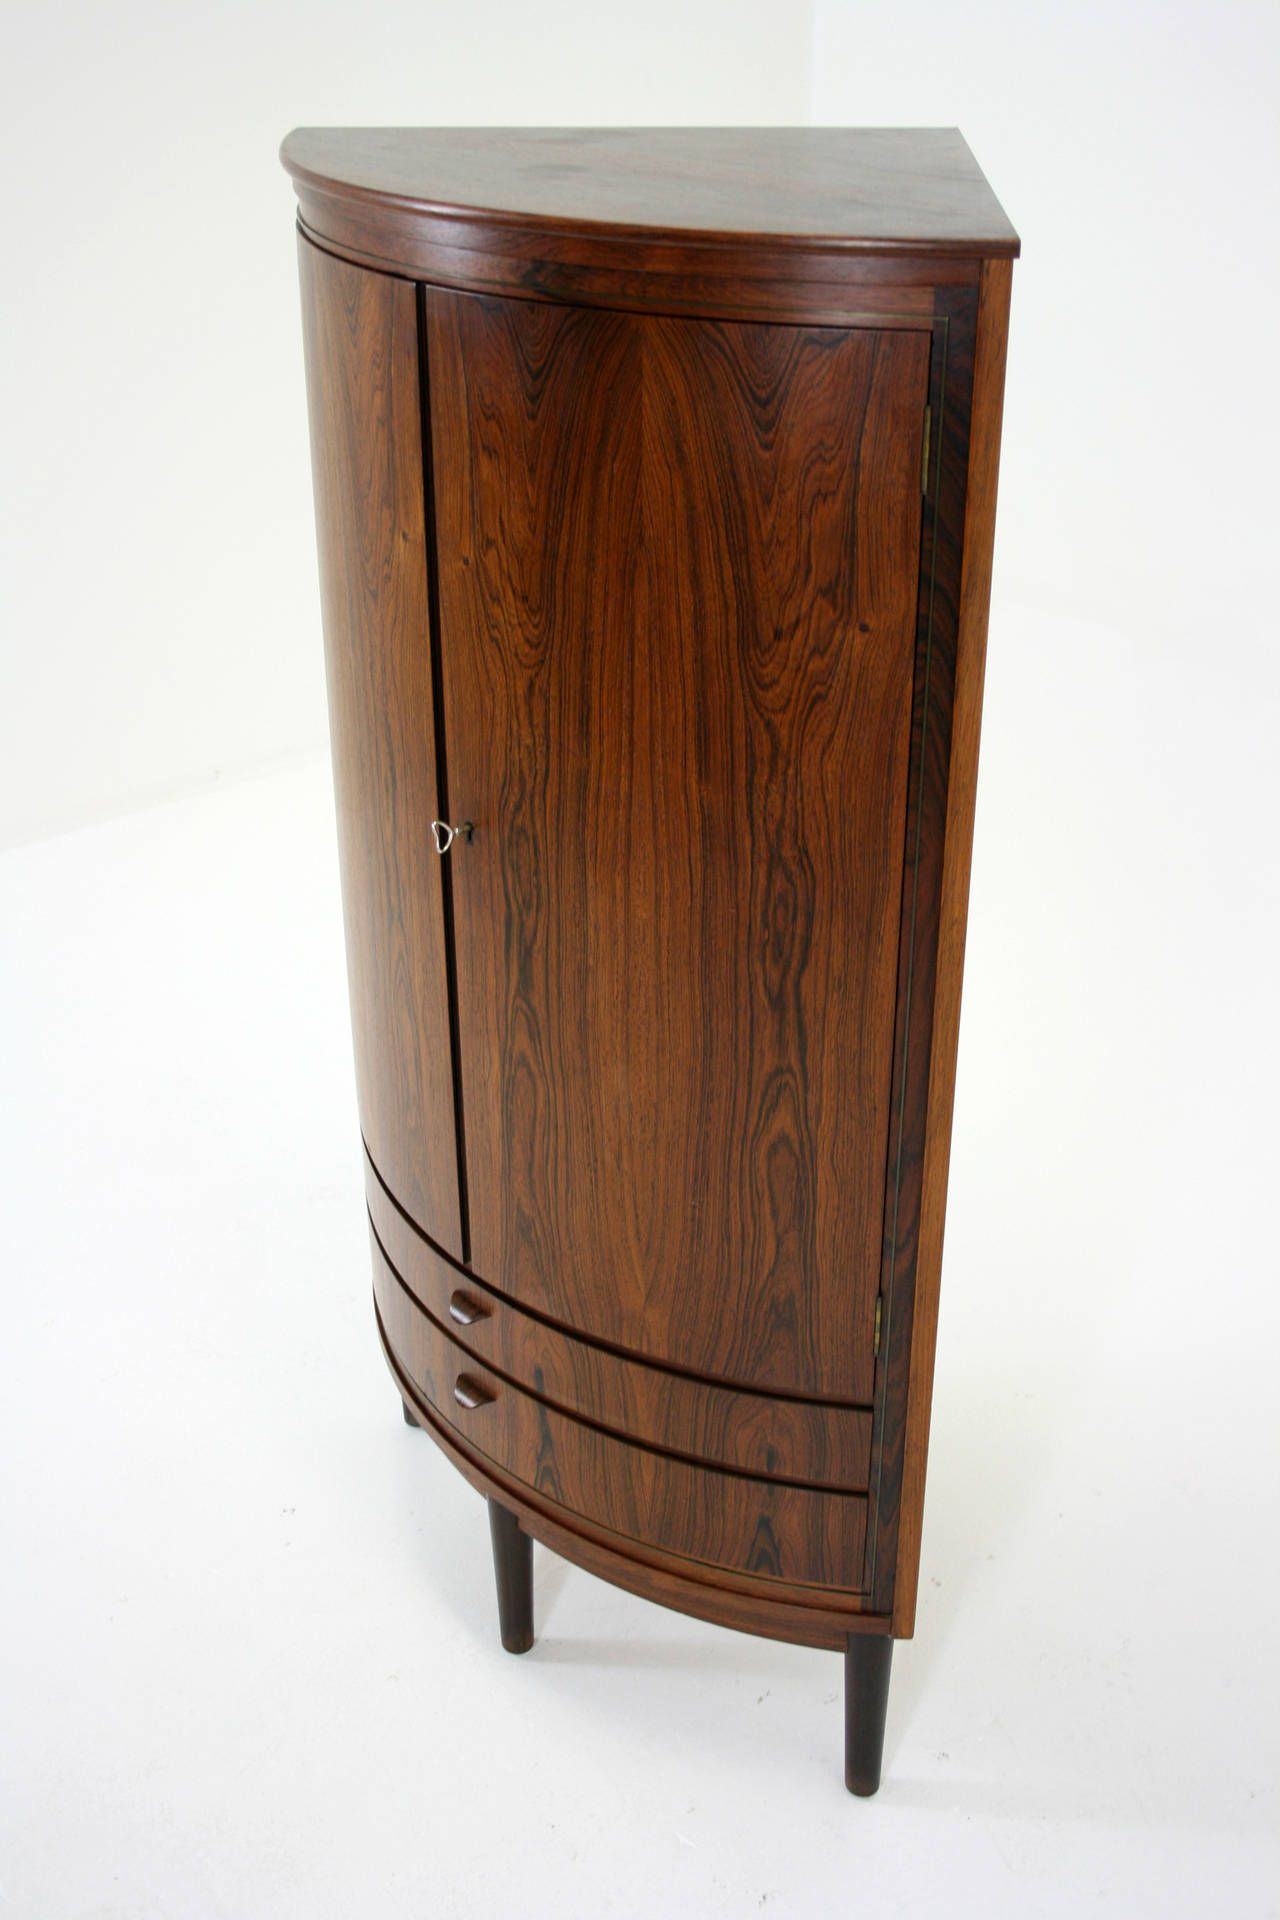 view this item and discover similar corner cupboards for sale at  danishrosewood curved front with two small drawers fixed shelves in excellent. modern corner bar cabinet  google search  tiki lifemid cent mod